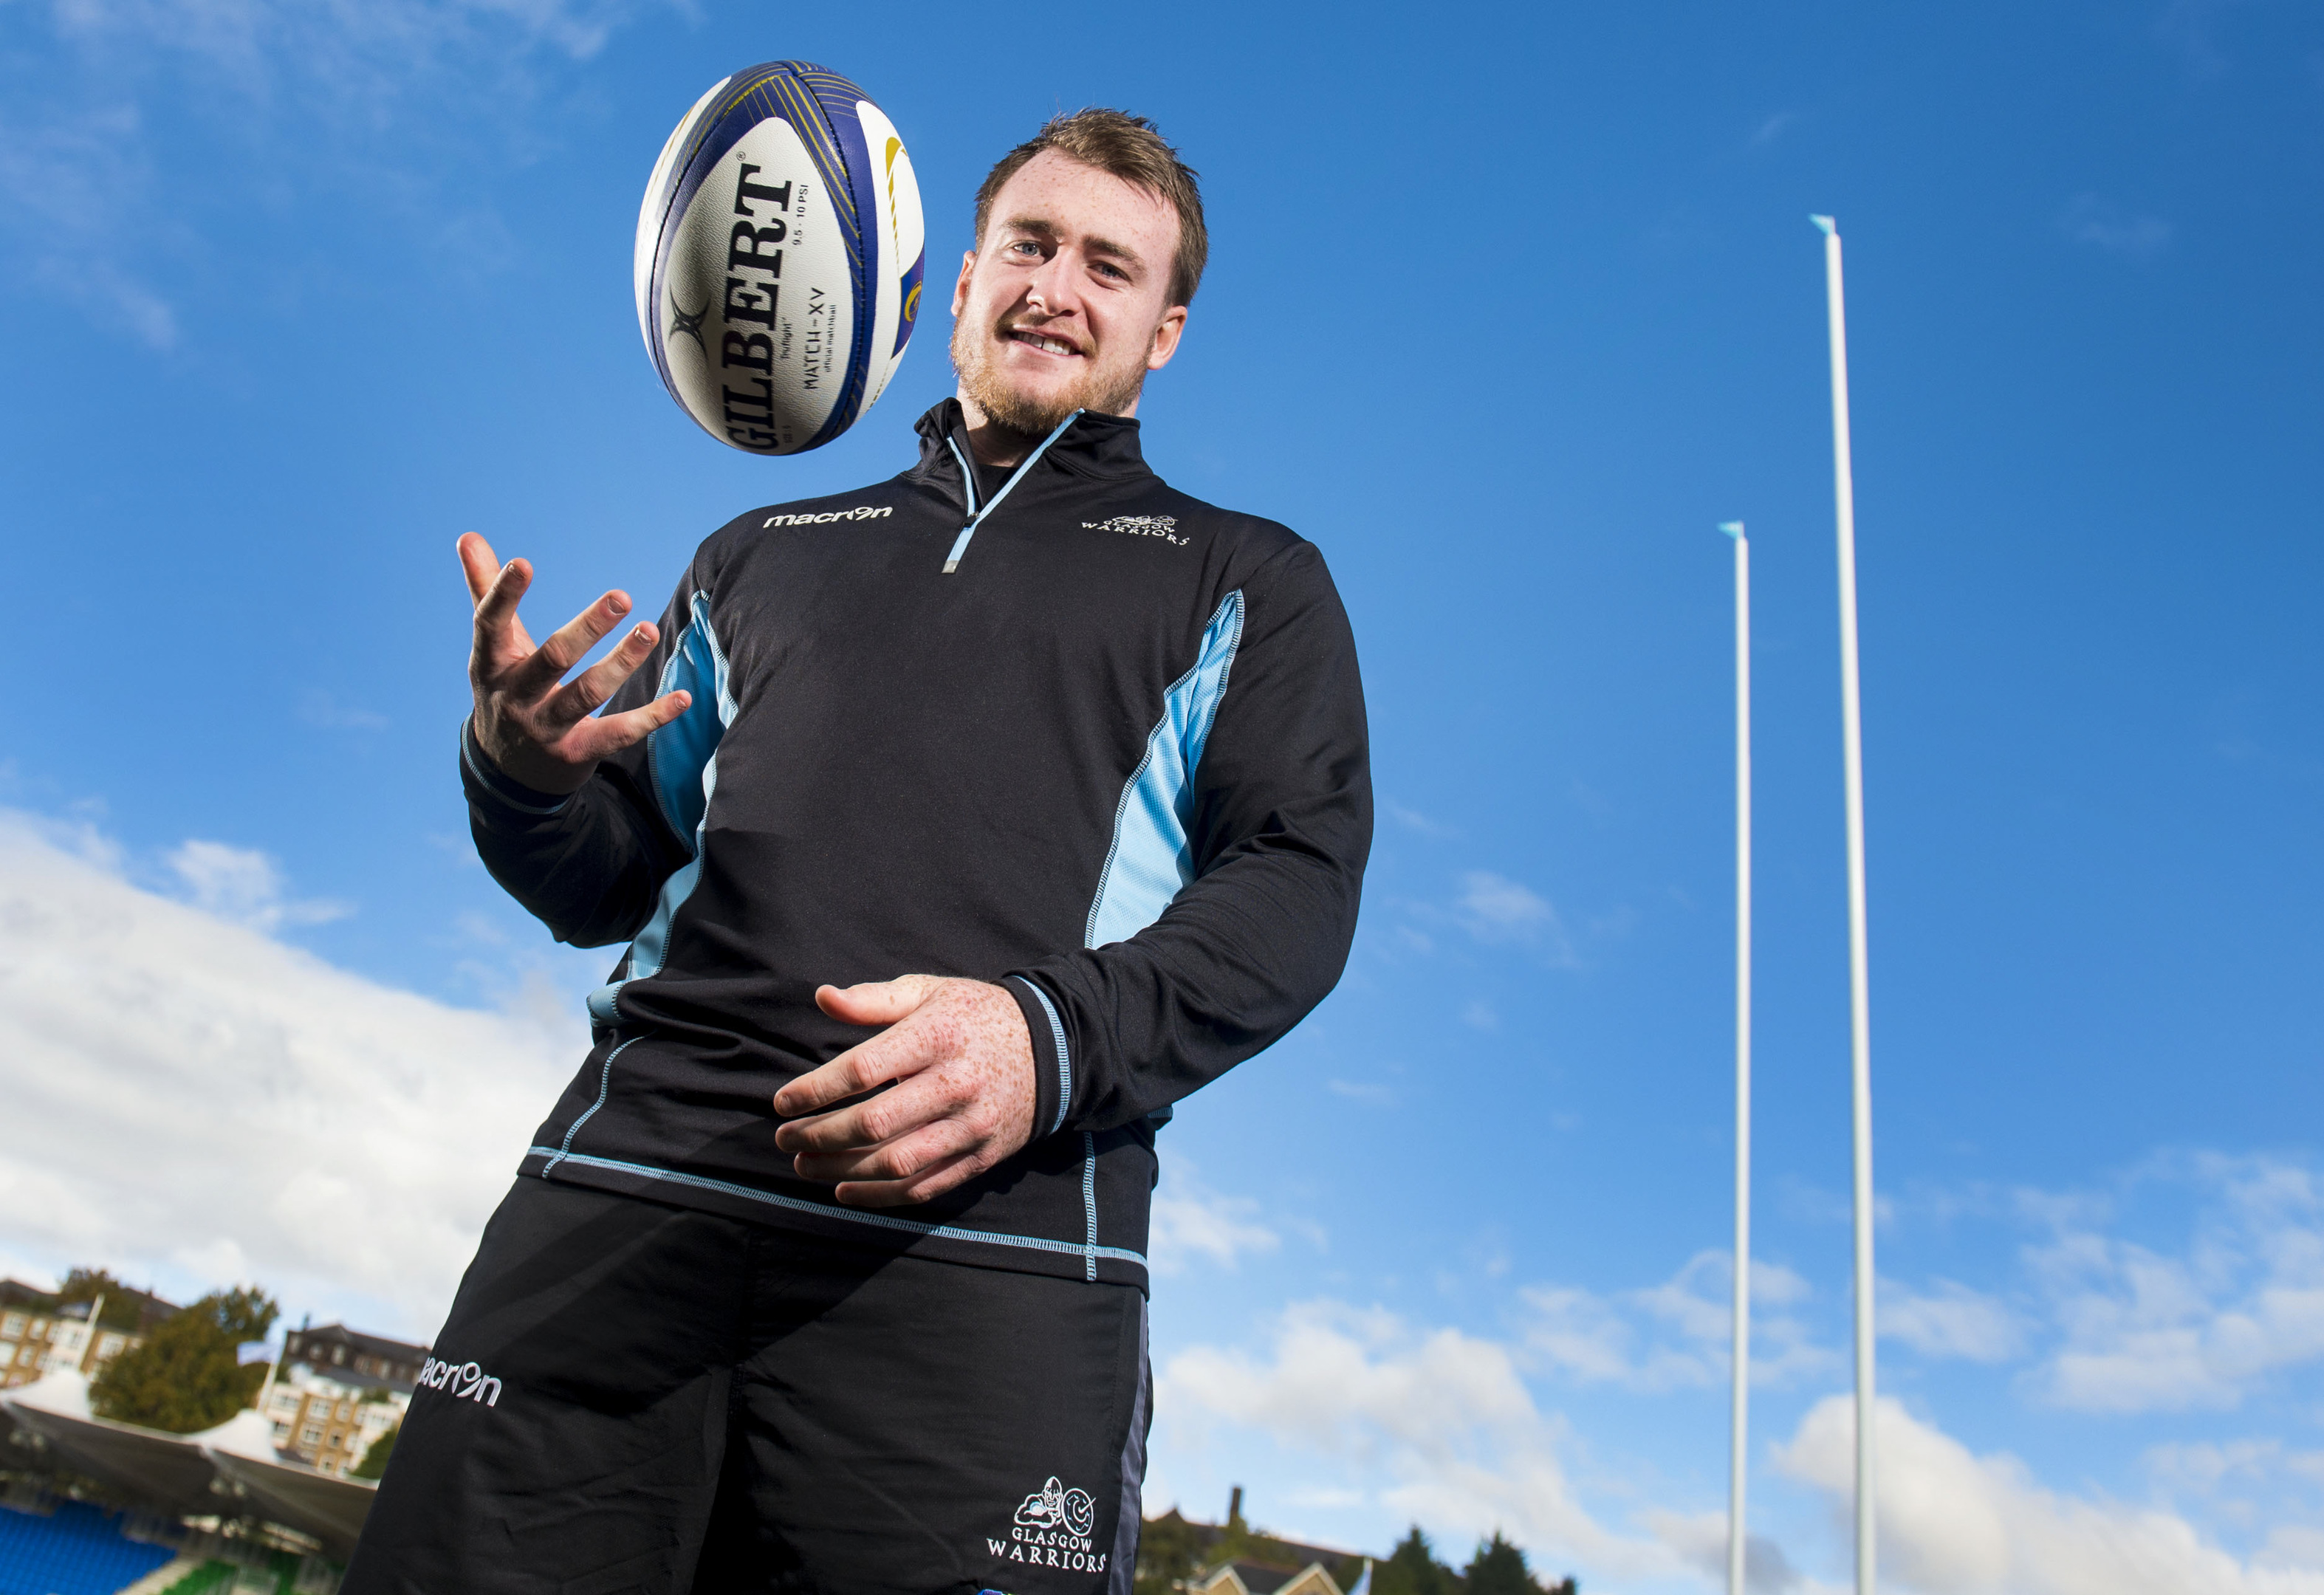 Stuart Hogg has a new contract and wants European success with the Warriors.